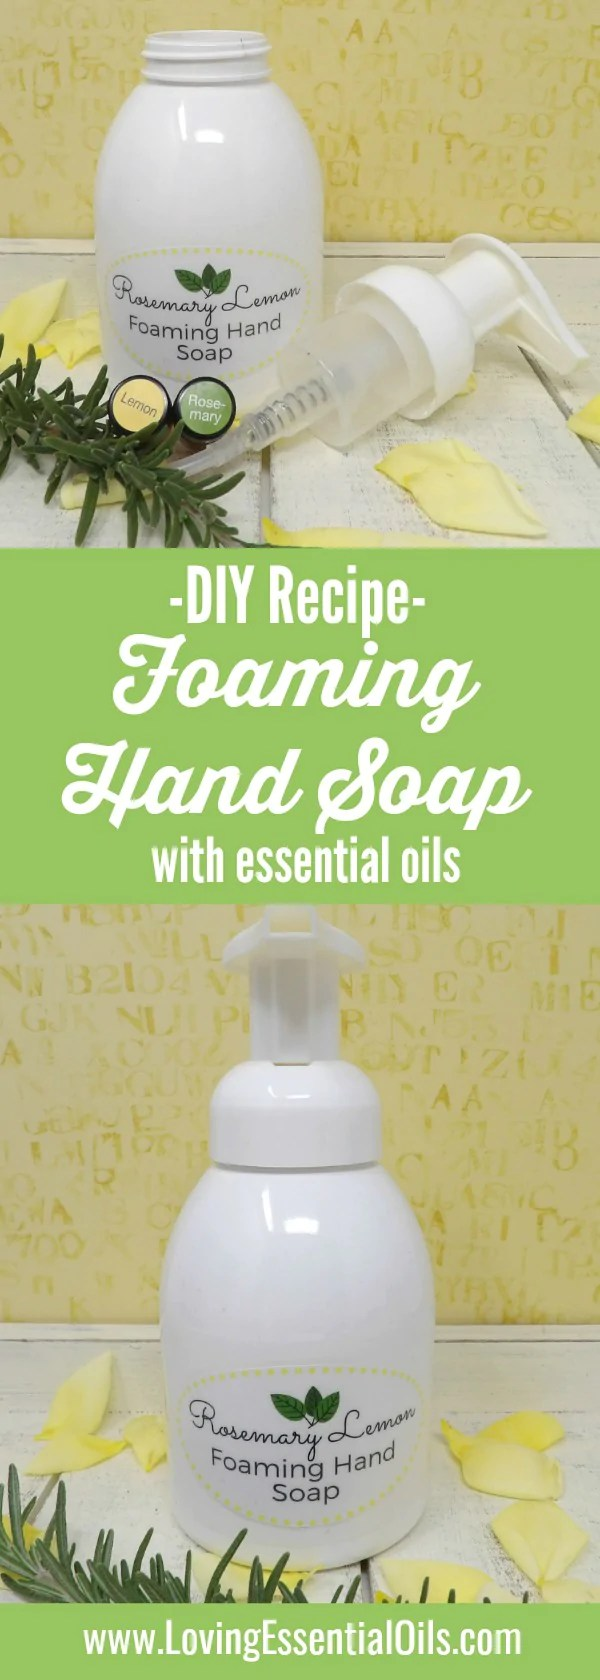 Diy Soap Essential Oils Diy Foaming Hand Soap With Essential Oils Rosemary Lemon